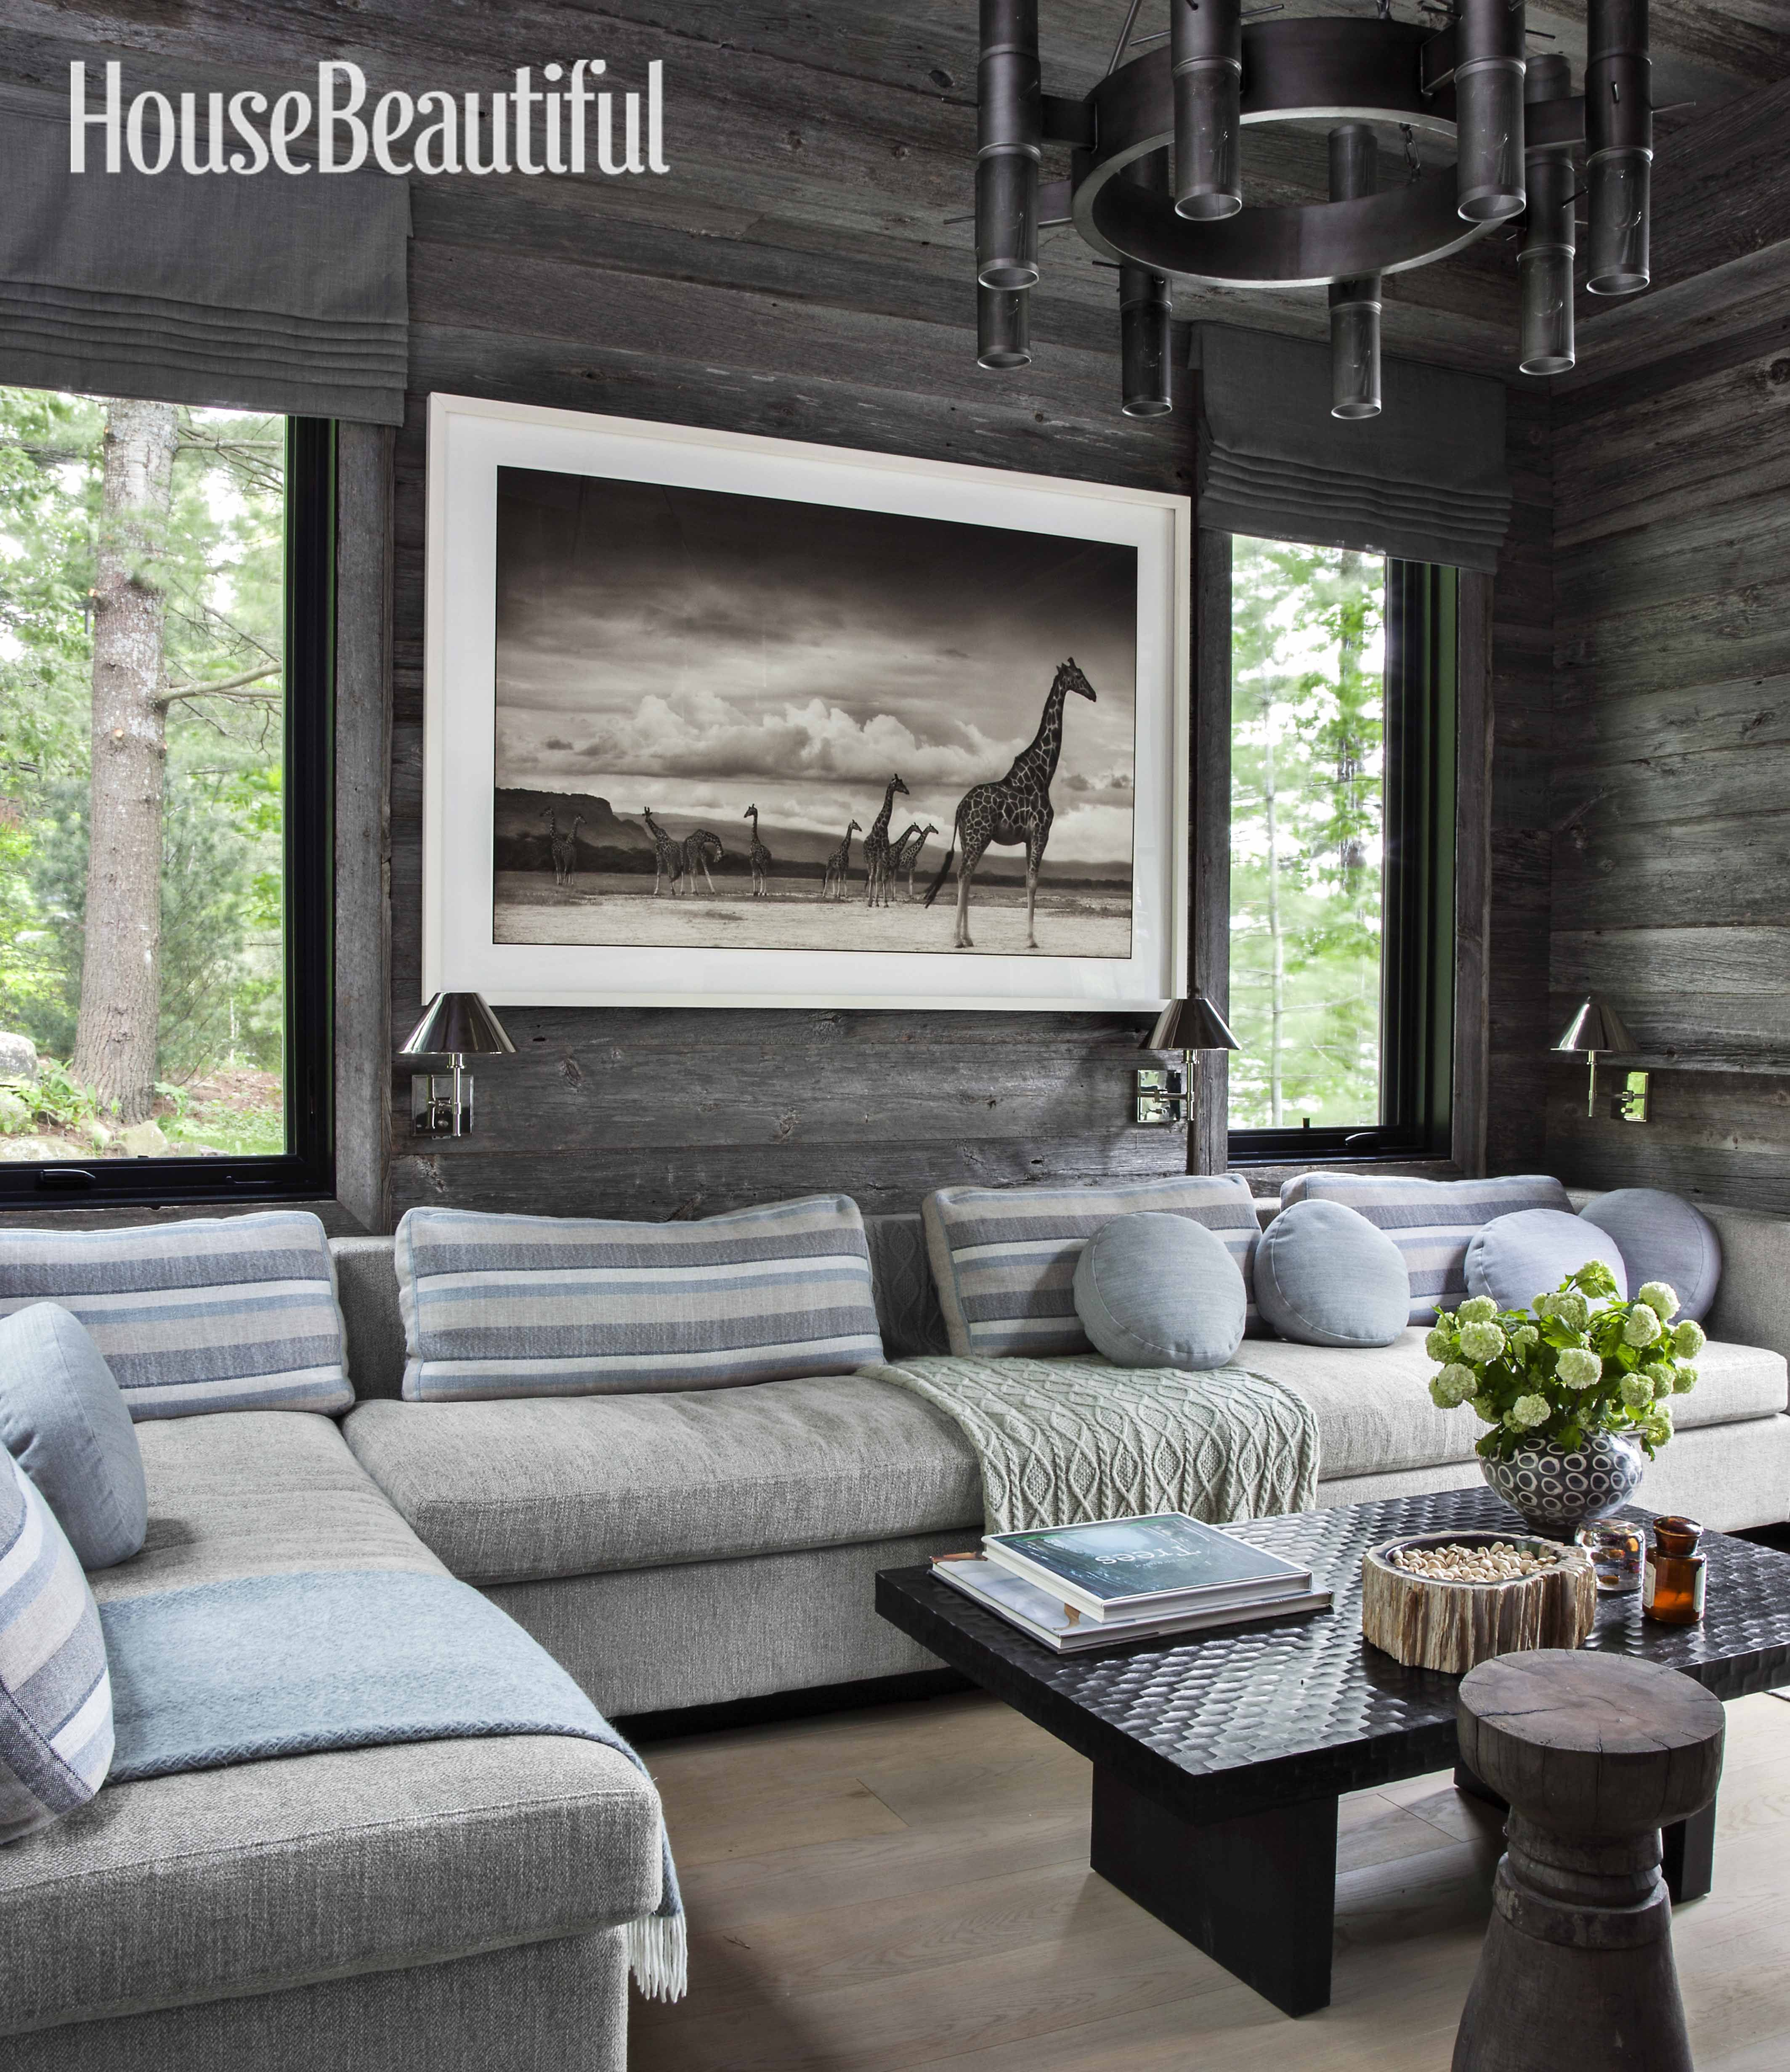 Rustic Lake House Decorating Ideas Rustic Lake House: Home Tour: Anne Hepfer's Rustic Modern Lake House